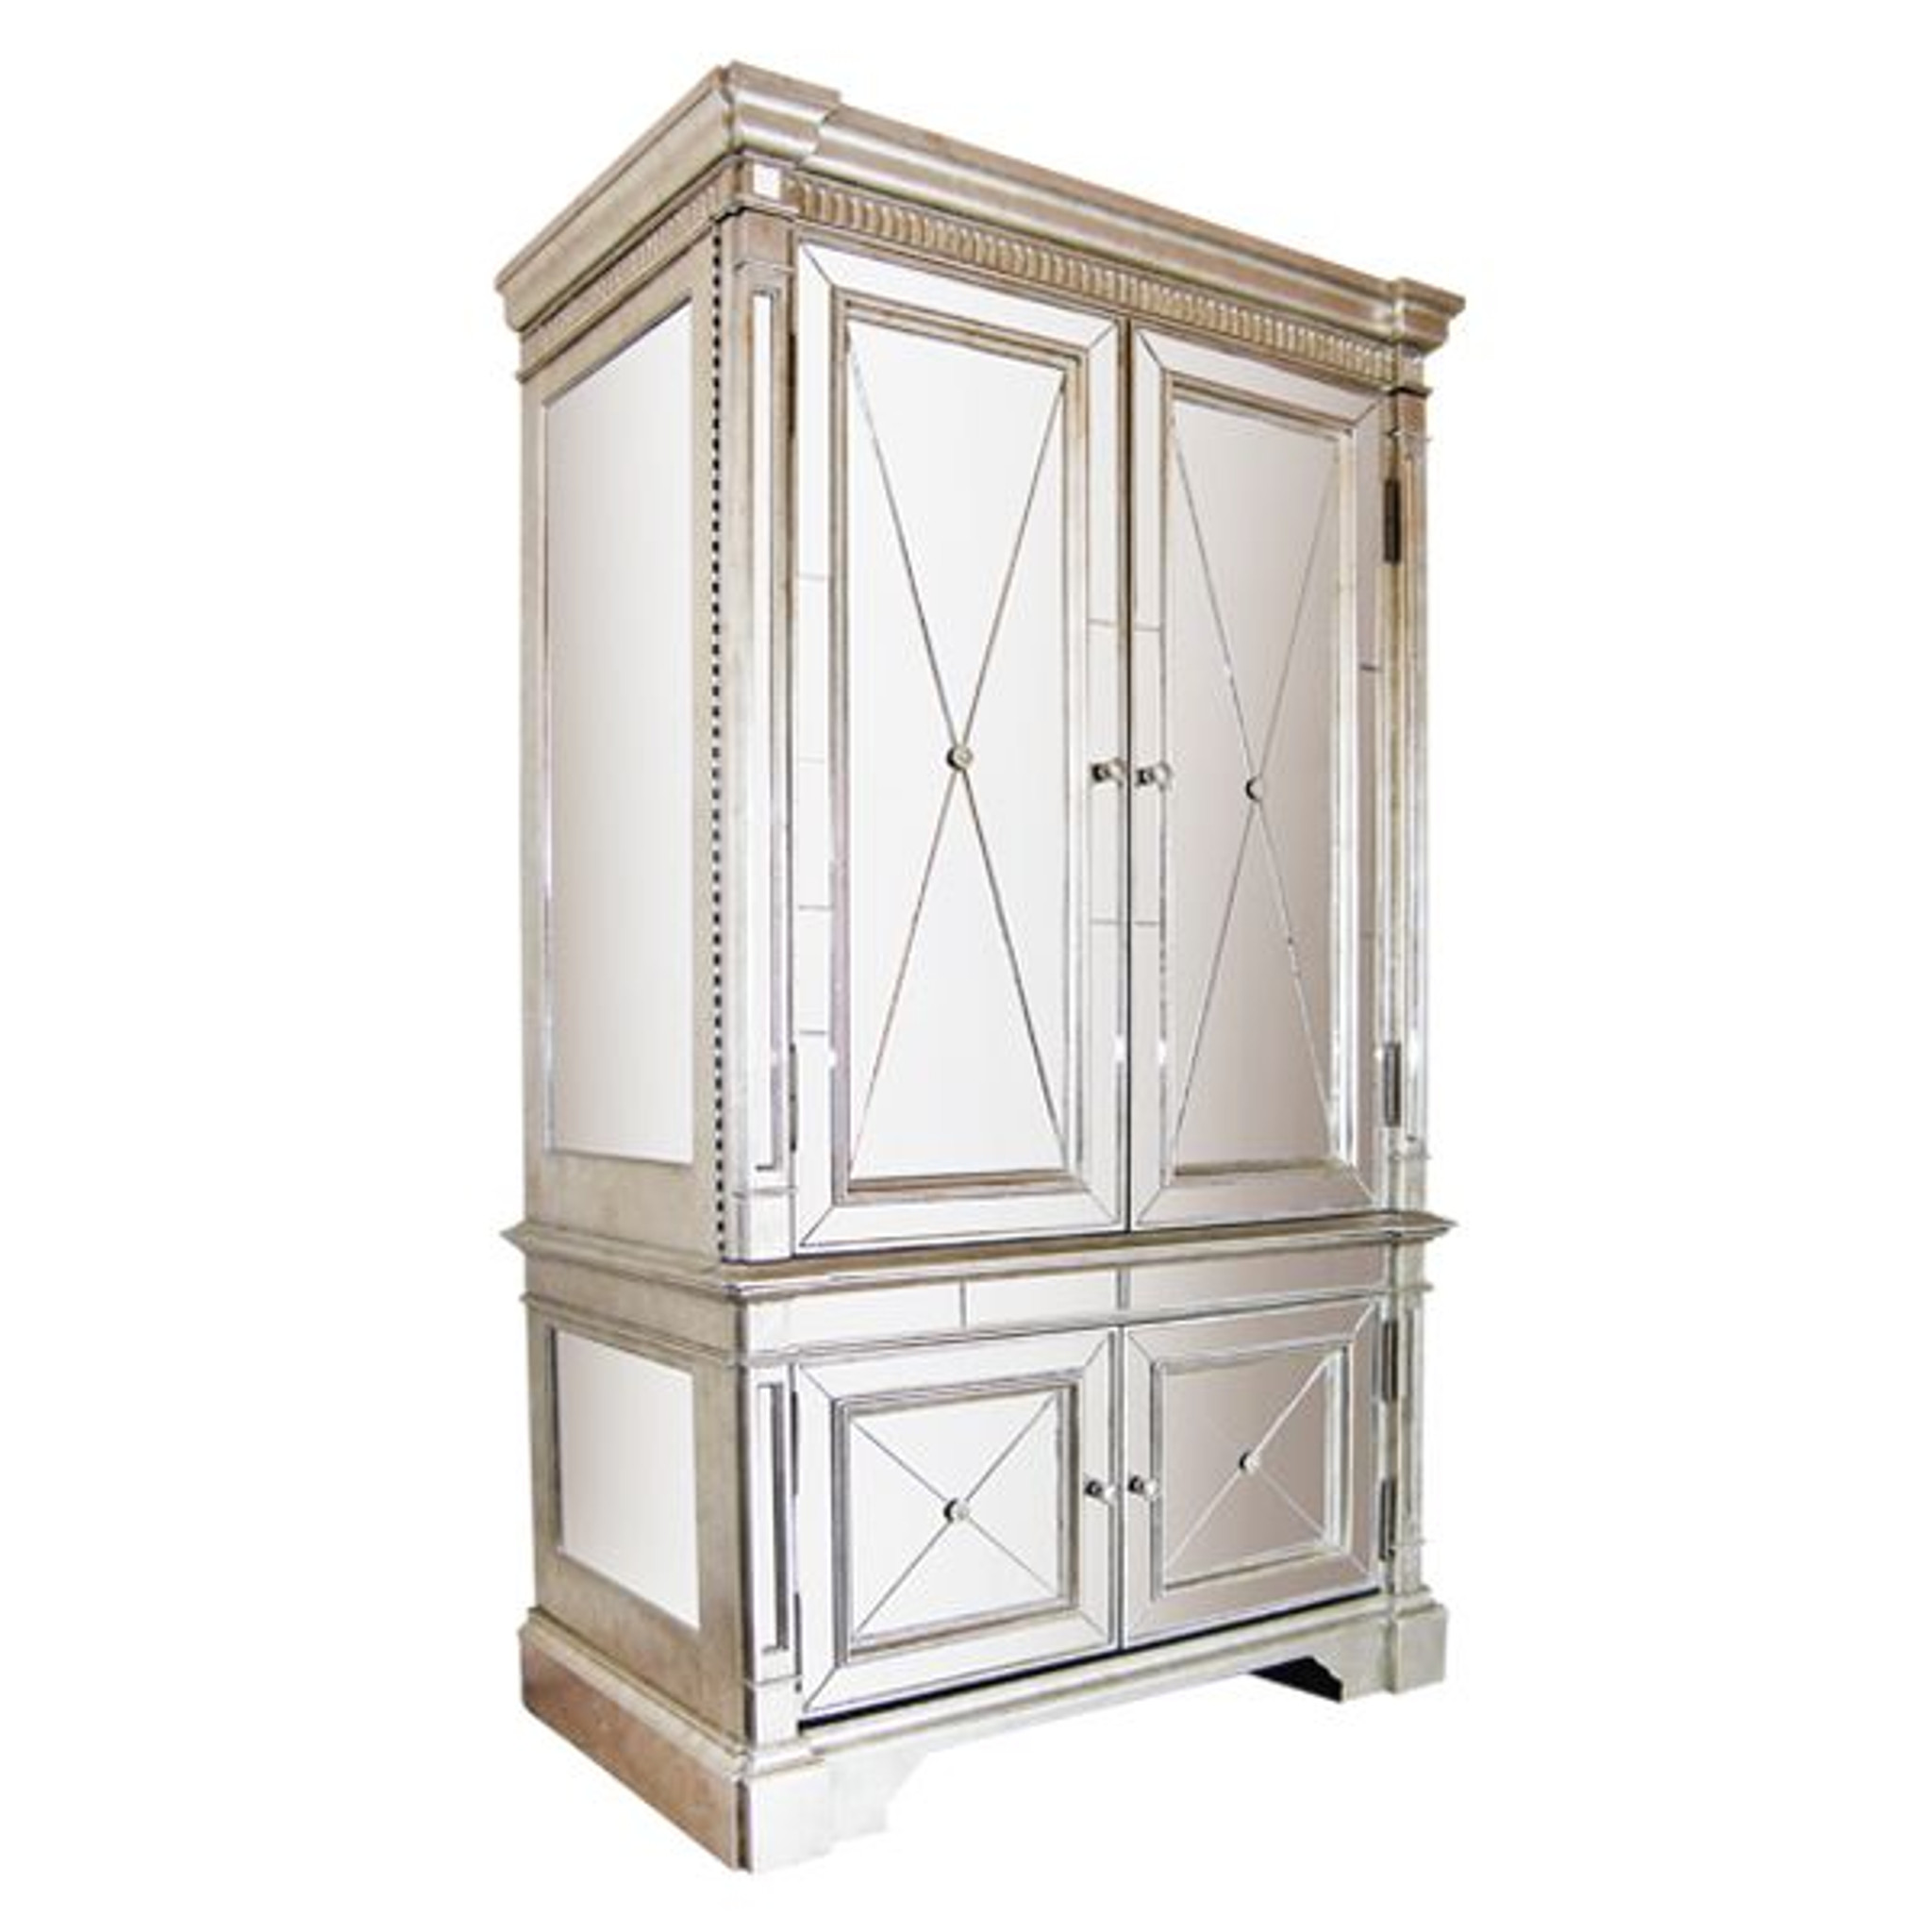 Mirrored Armoire: Antique Mirrored Armoire / TV Cabinet